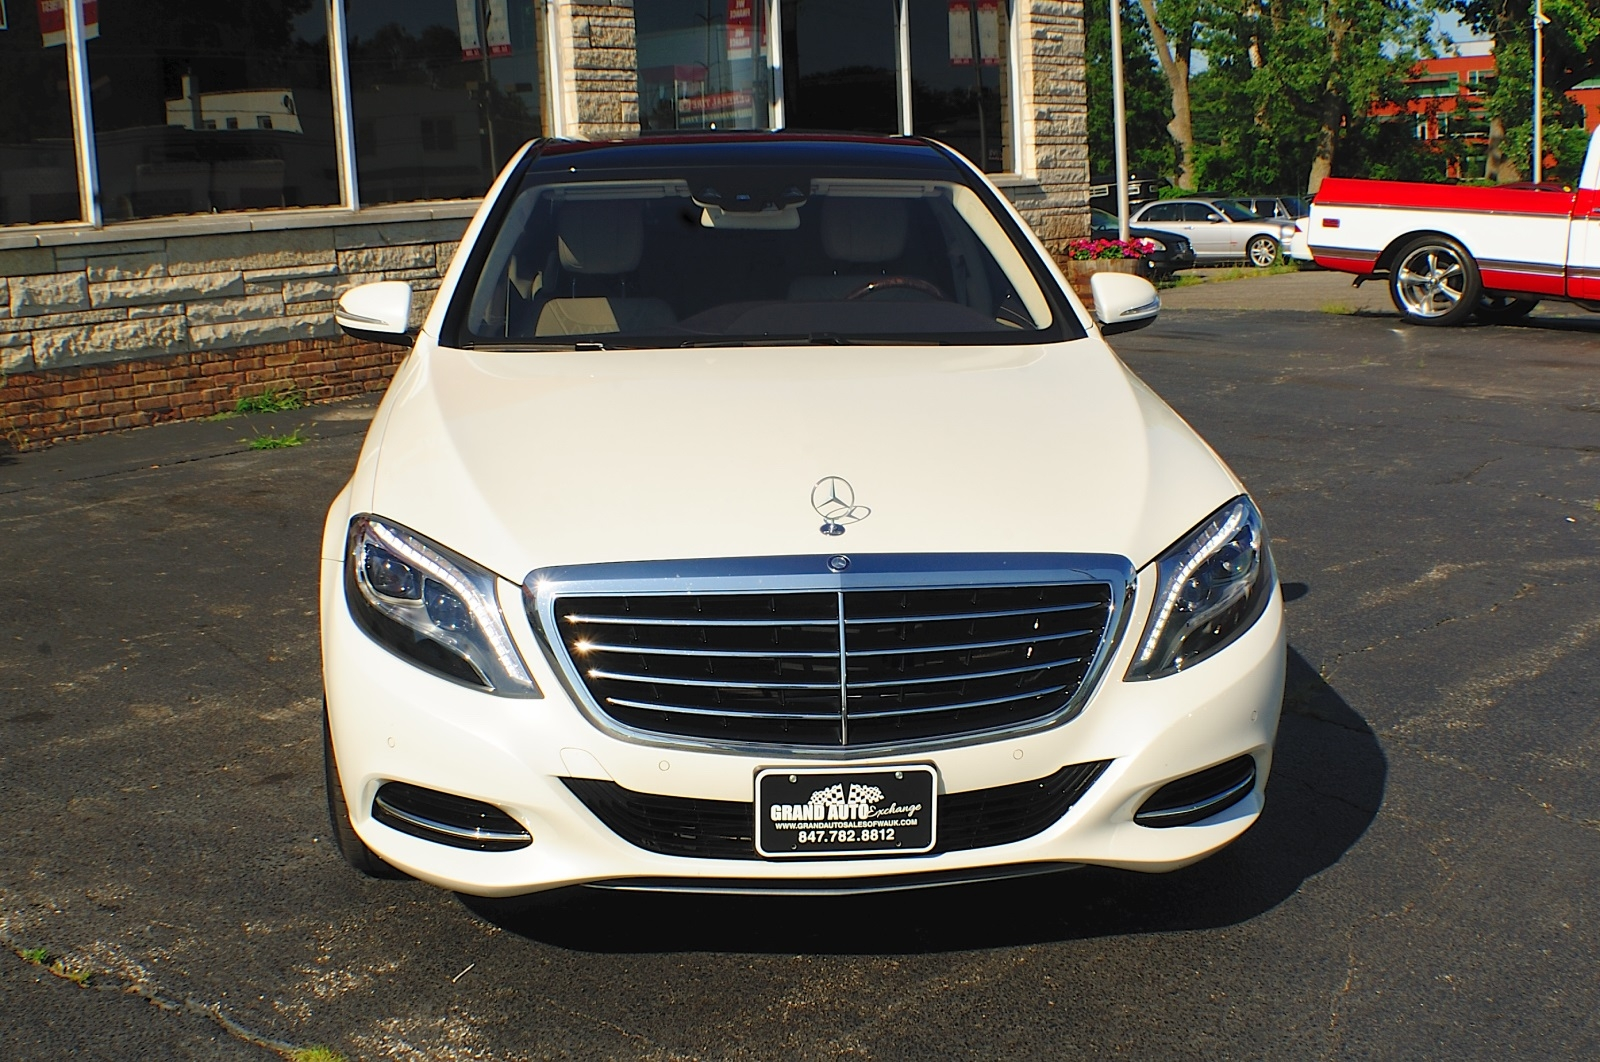 Mercedes benz 2014 s550 white images for 2014 mercedes benz s550 price